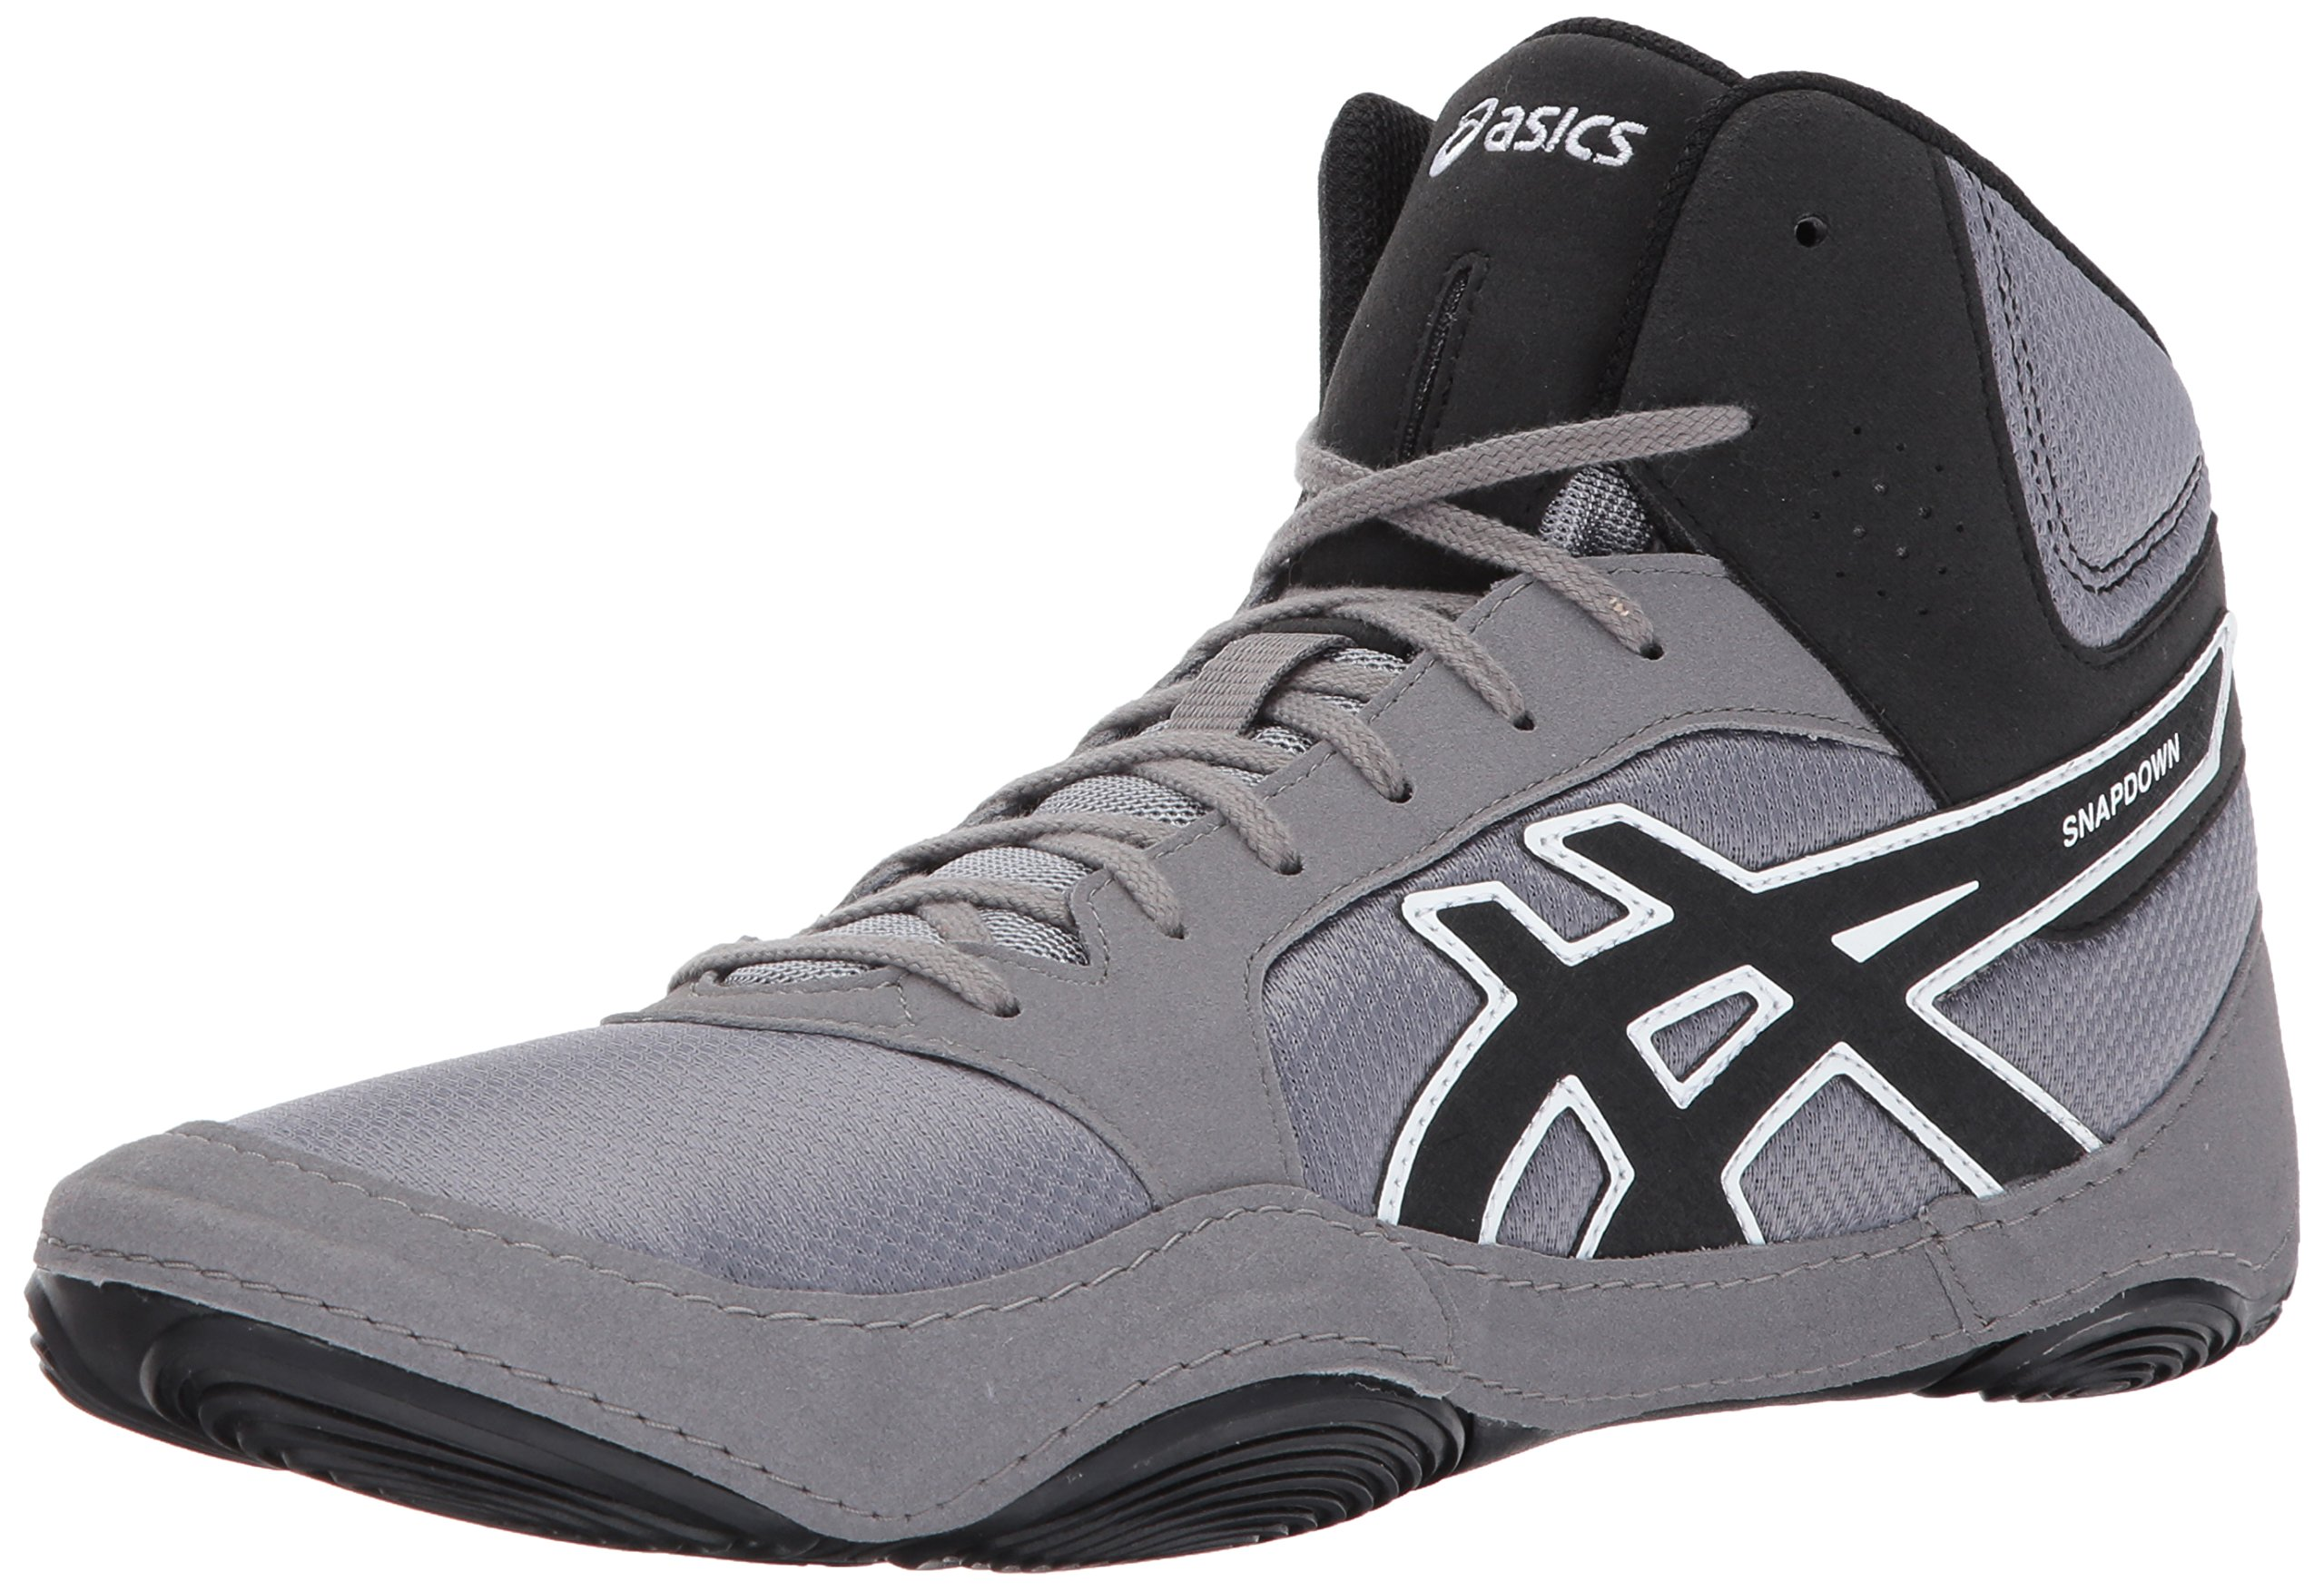 ASICS Mens Snapdown 2 Wrestling Shoe, Black/Aluminum/White, 8.5 Medium US